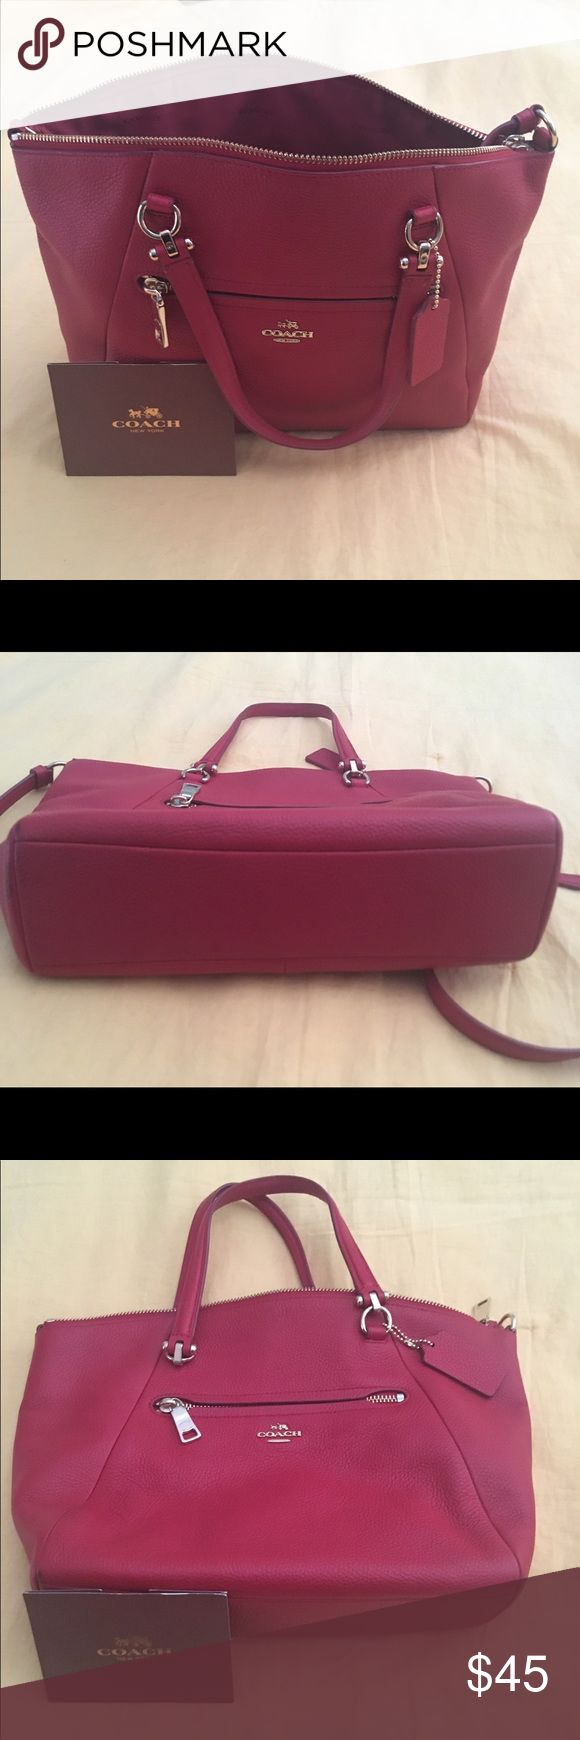 Red coach purse Red coach purse, carry bag with handles or shoulder bag... small zipper in front,  small pocket interior. Clean and in good condition.   Approximately 12 inches wide and 9 inches tall. NIce! Coach Bags Shoulder Bags